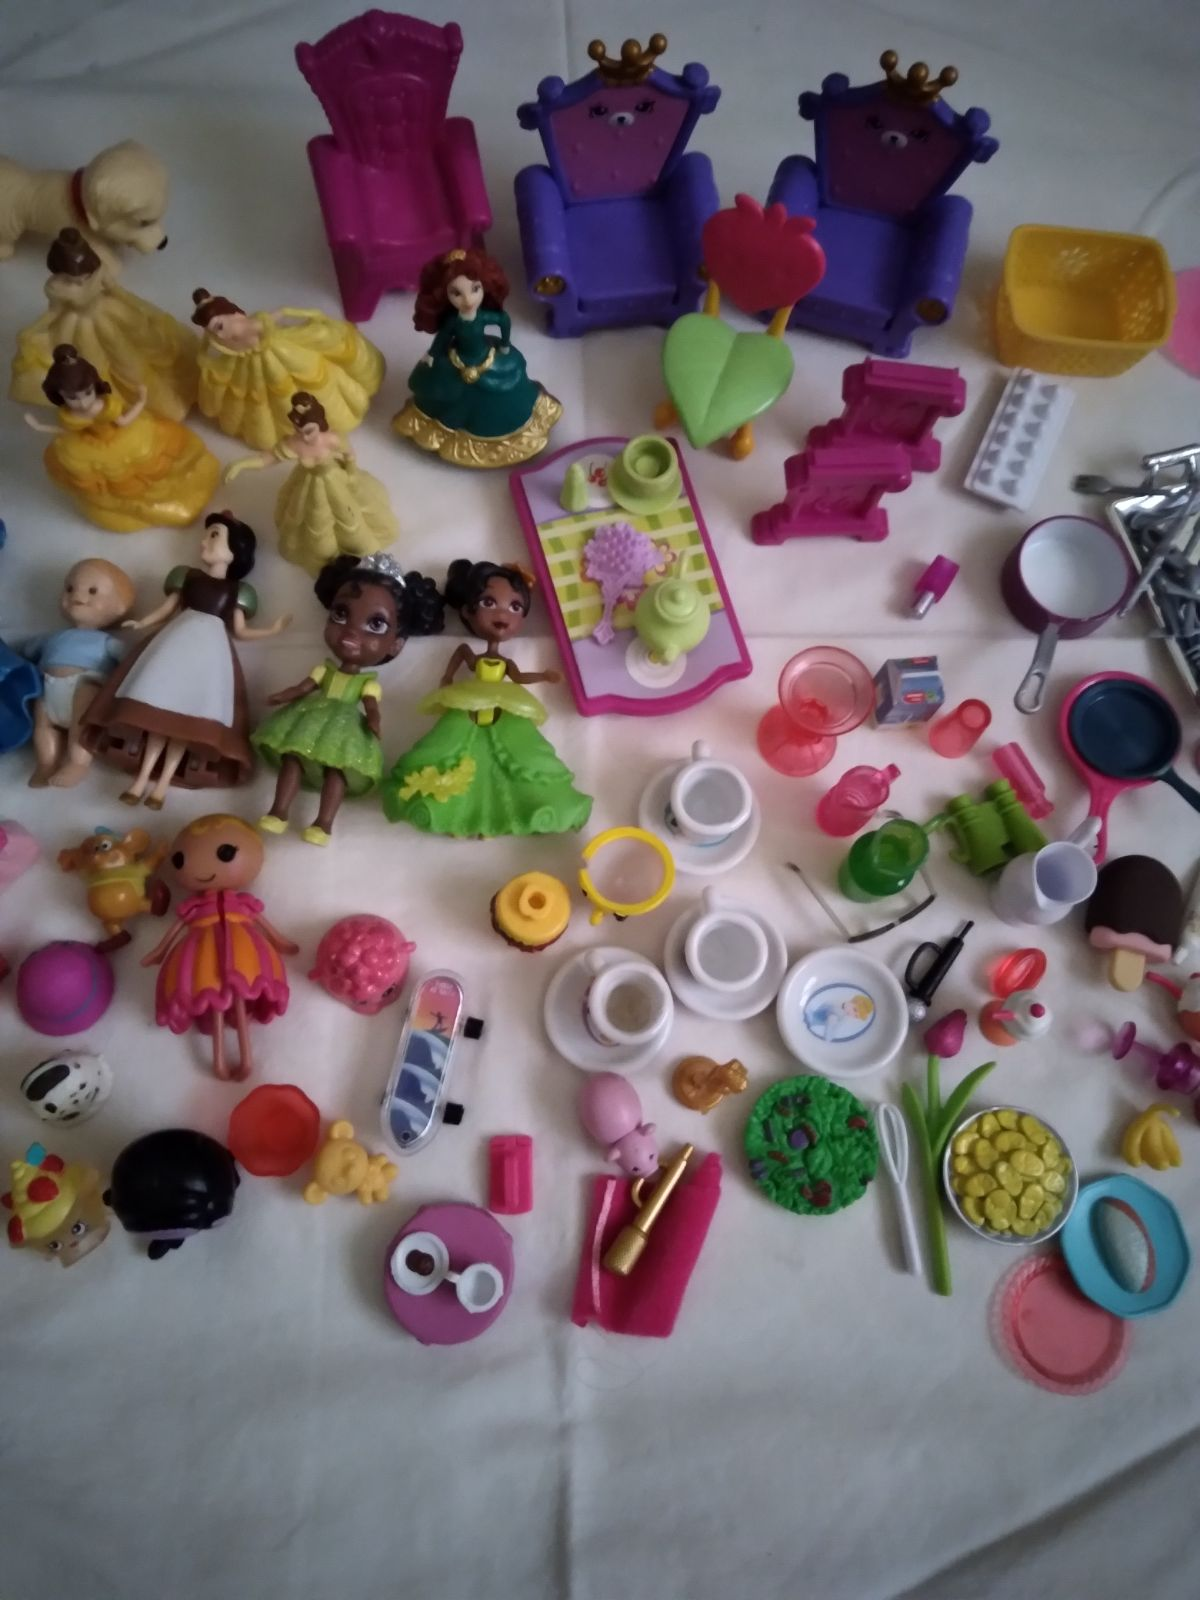 Mixed Lot of Disney and Variety of Toys